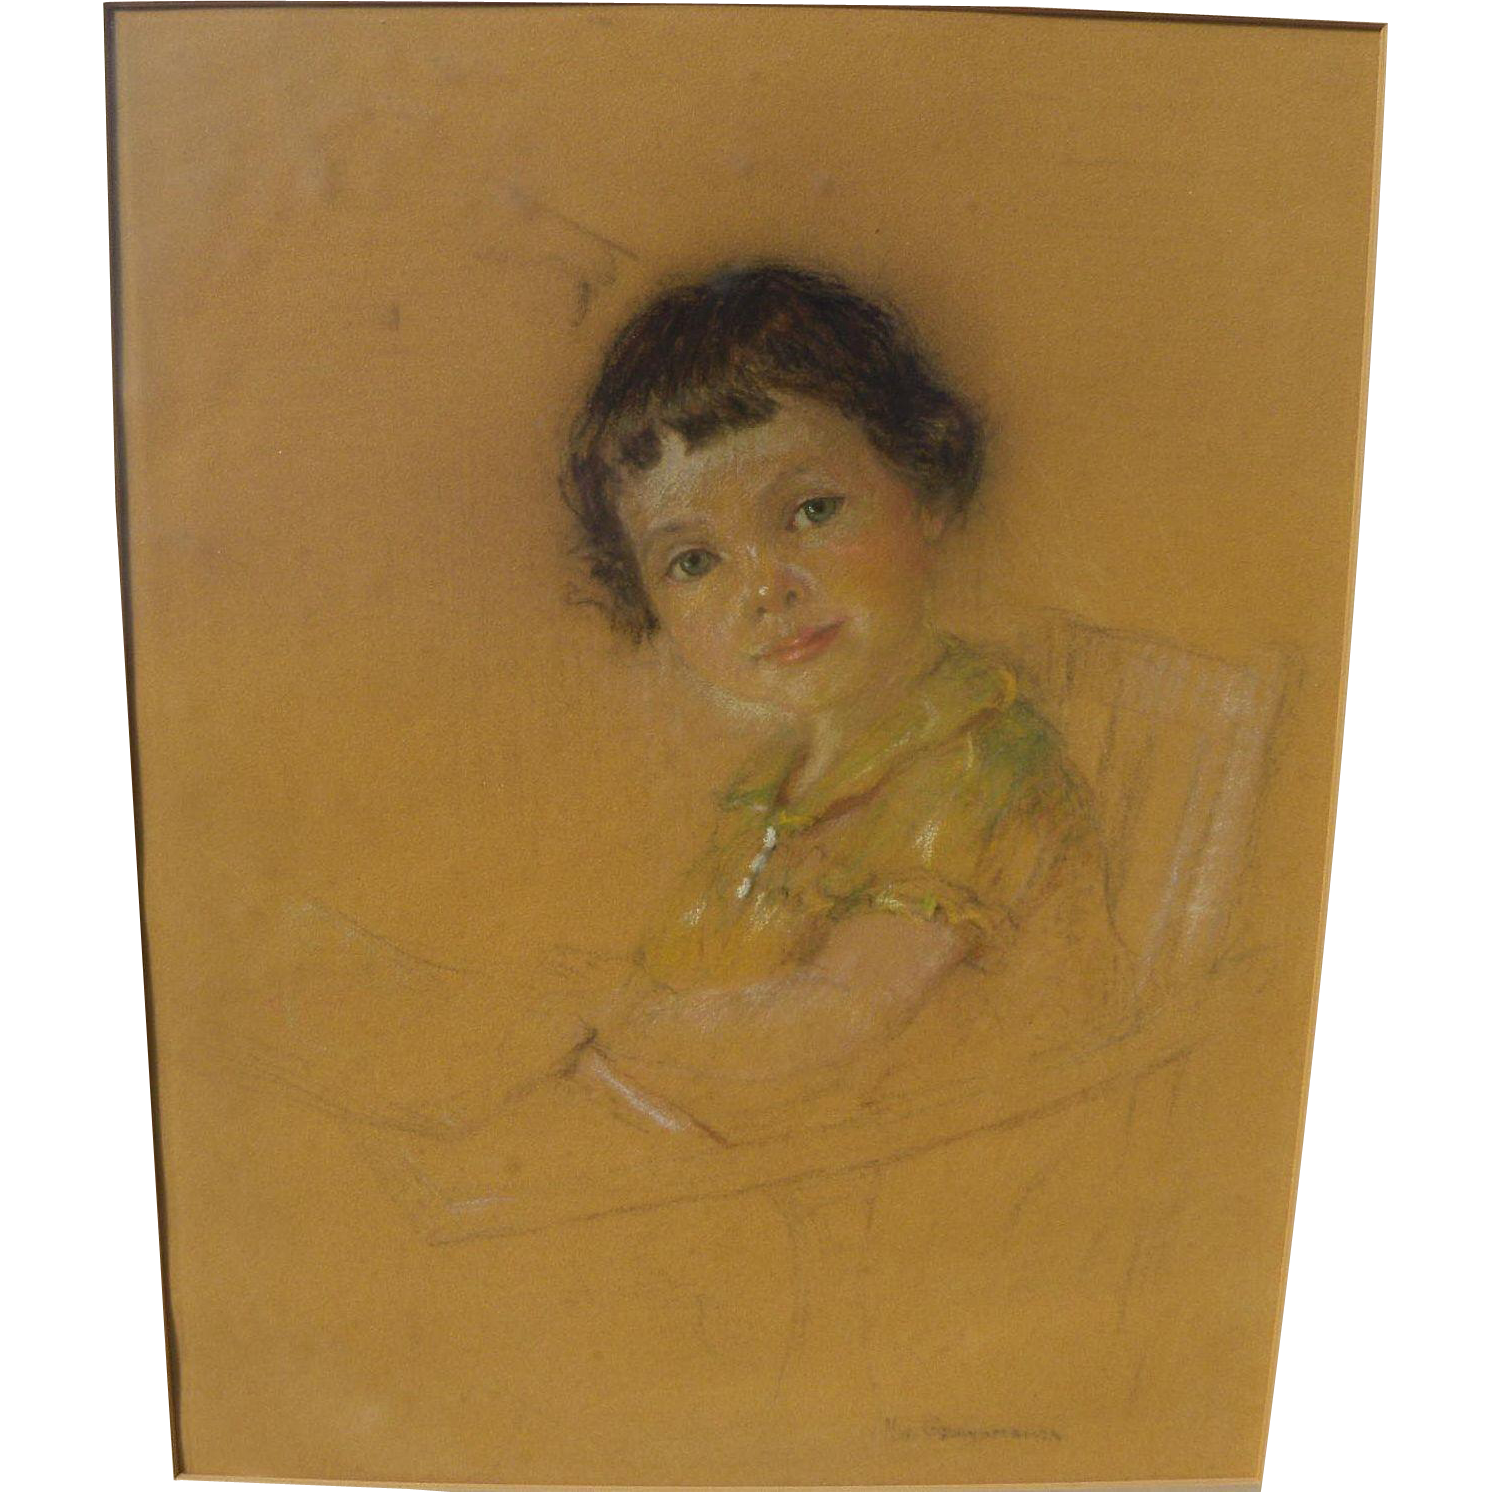 NICHOLAS DE GRANDMAISON (1892-1978) Canadian art pastel drawing of a young girl by important master